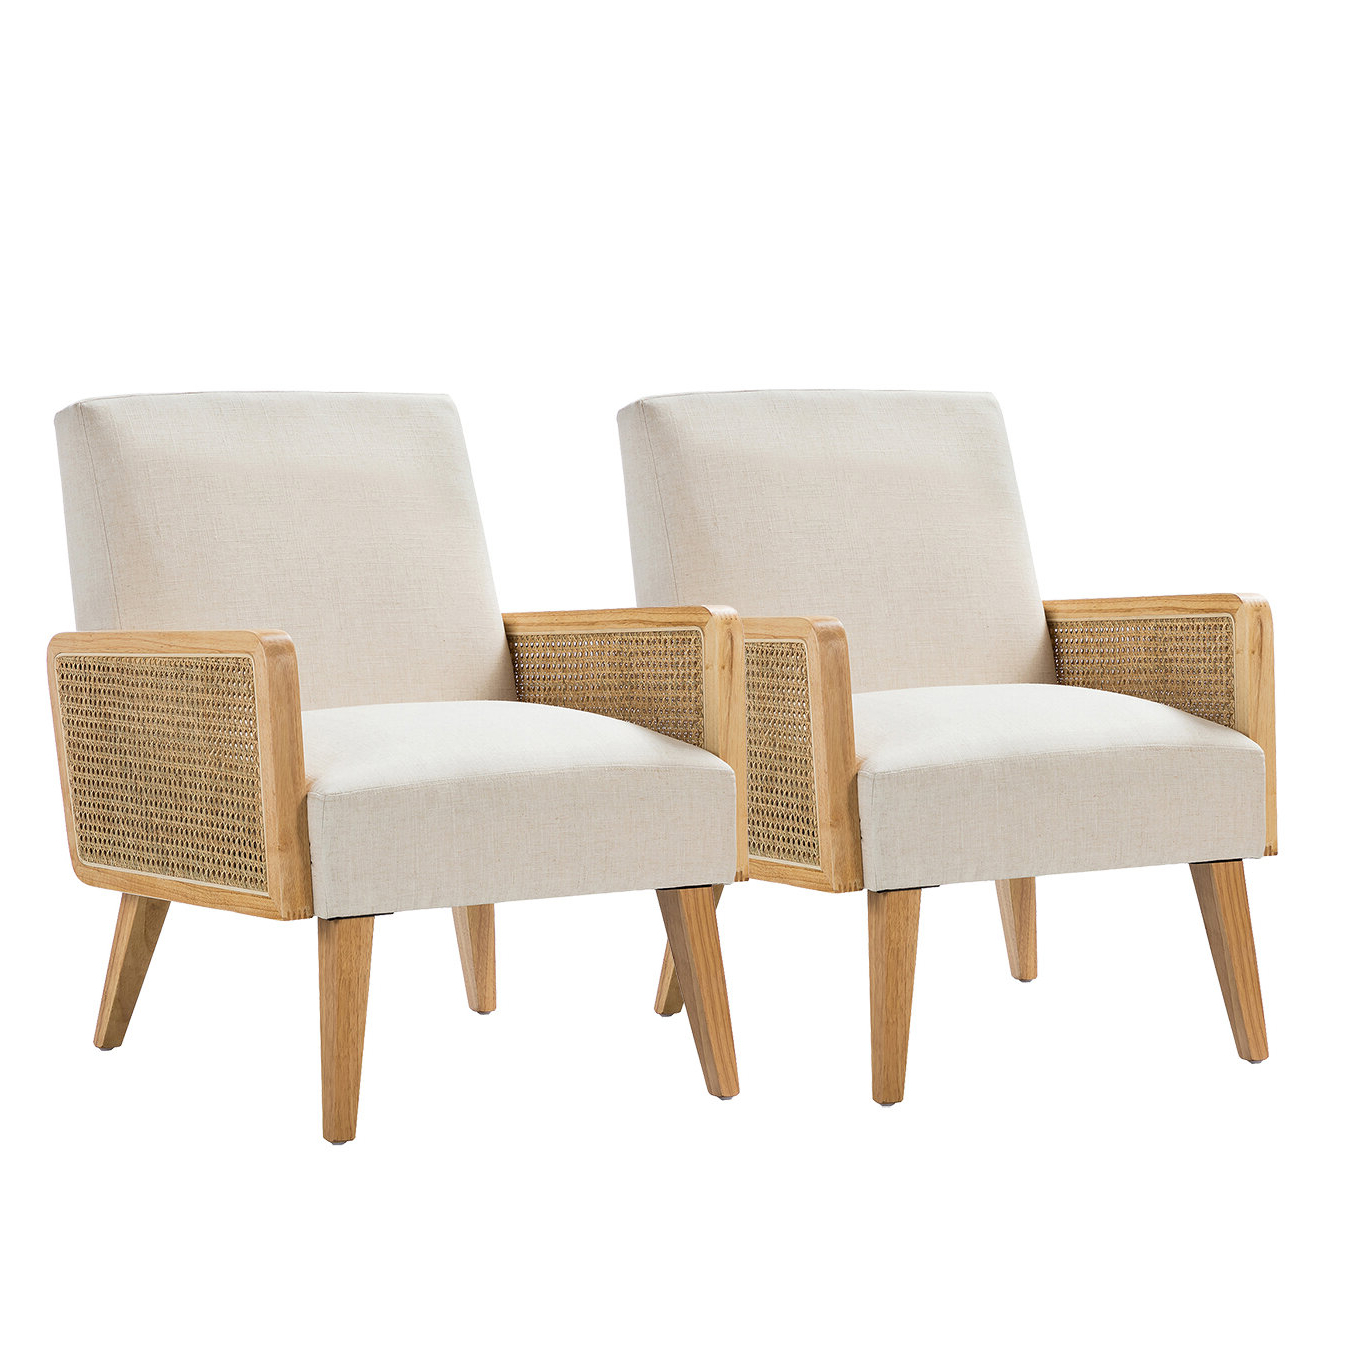 Arm Modern & Contemporary Accent Chairs You'll Love In 2021 Intended For Popular Lakeville Armchairs (View 3 of 20)